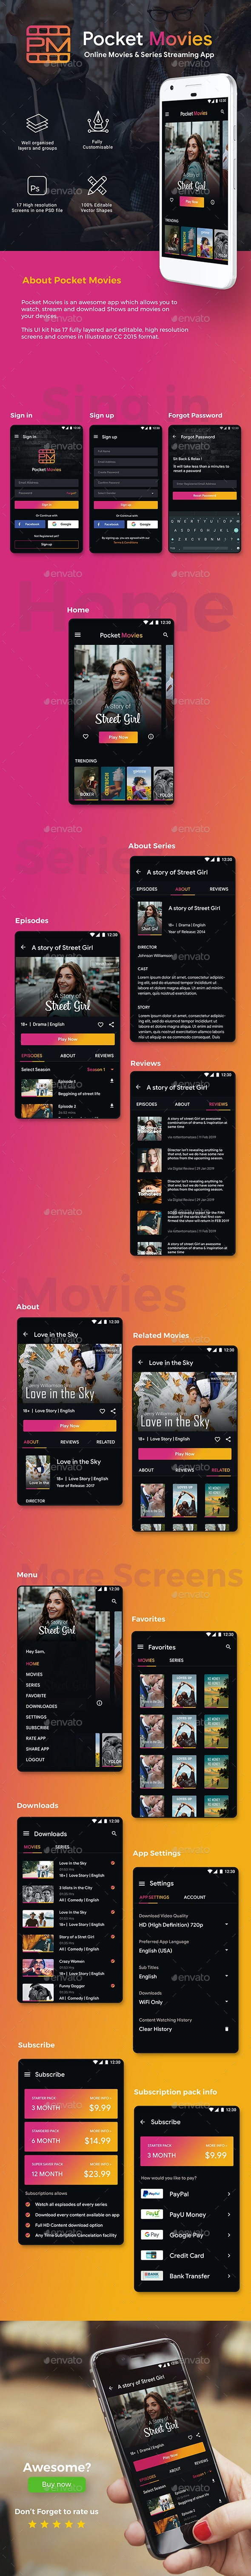 Online Movie, TV show & Video Streaming App UI Kit | Pocket Movies - User Interfaces Web Elements